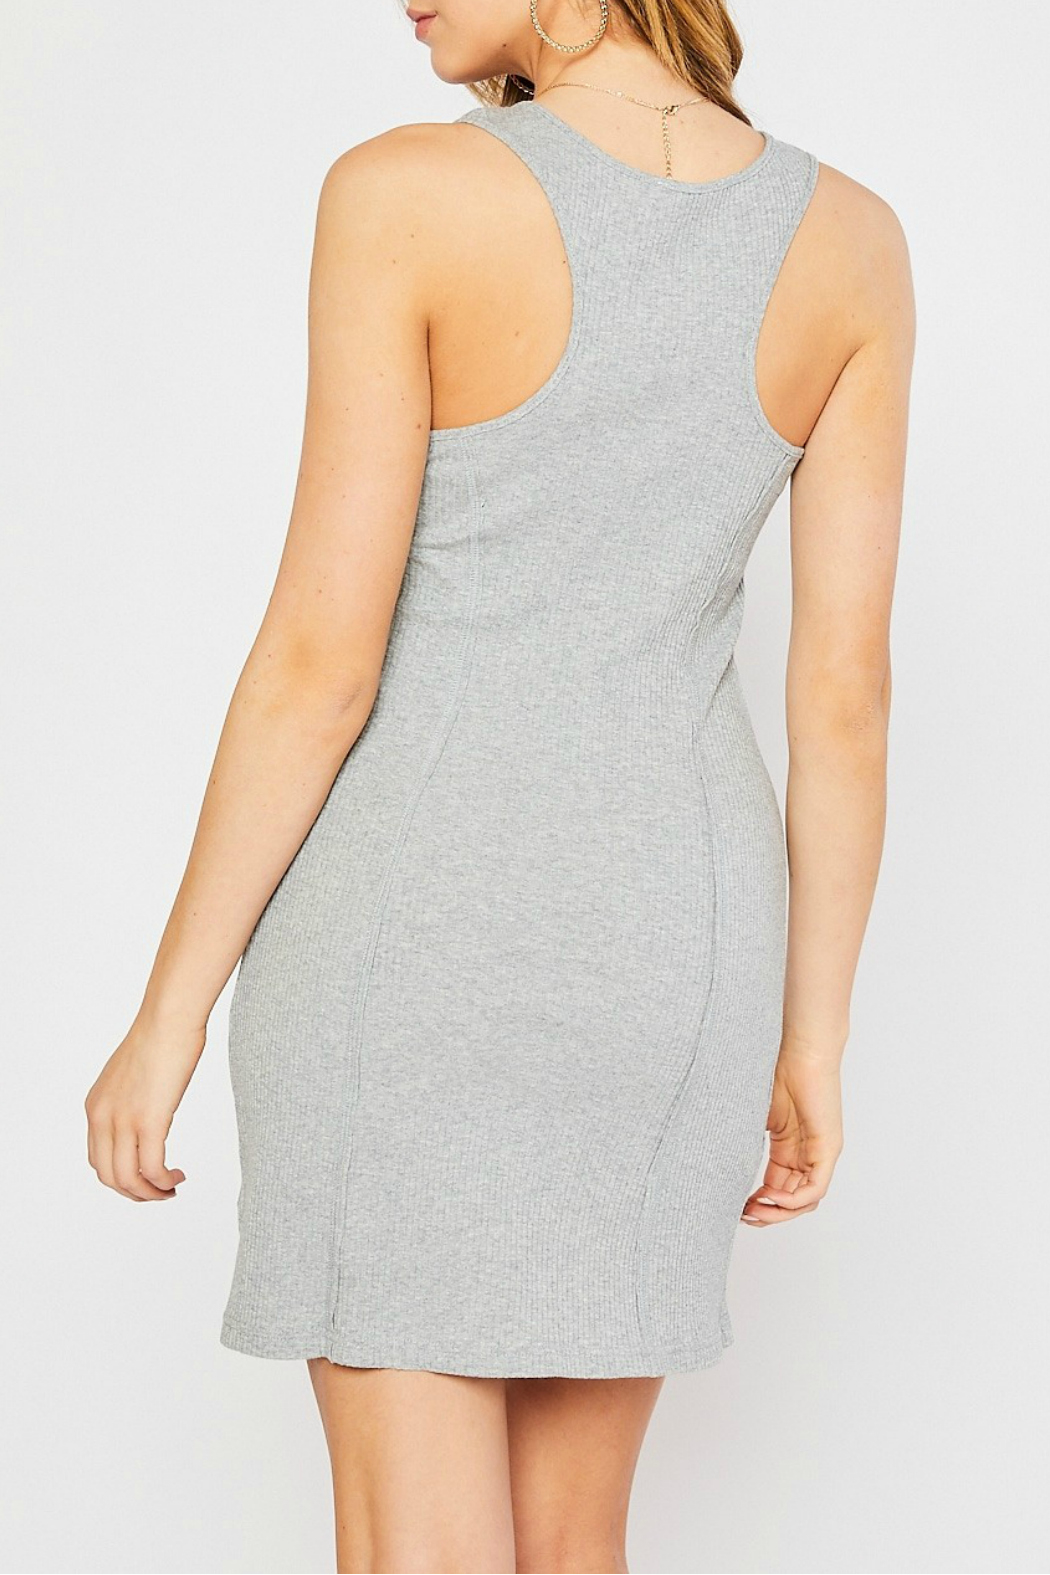 Mittoshop BUTTON FRONT RIB TANK DRESS - Front Full Image